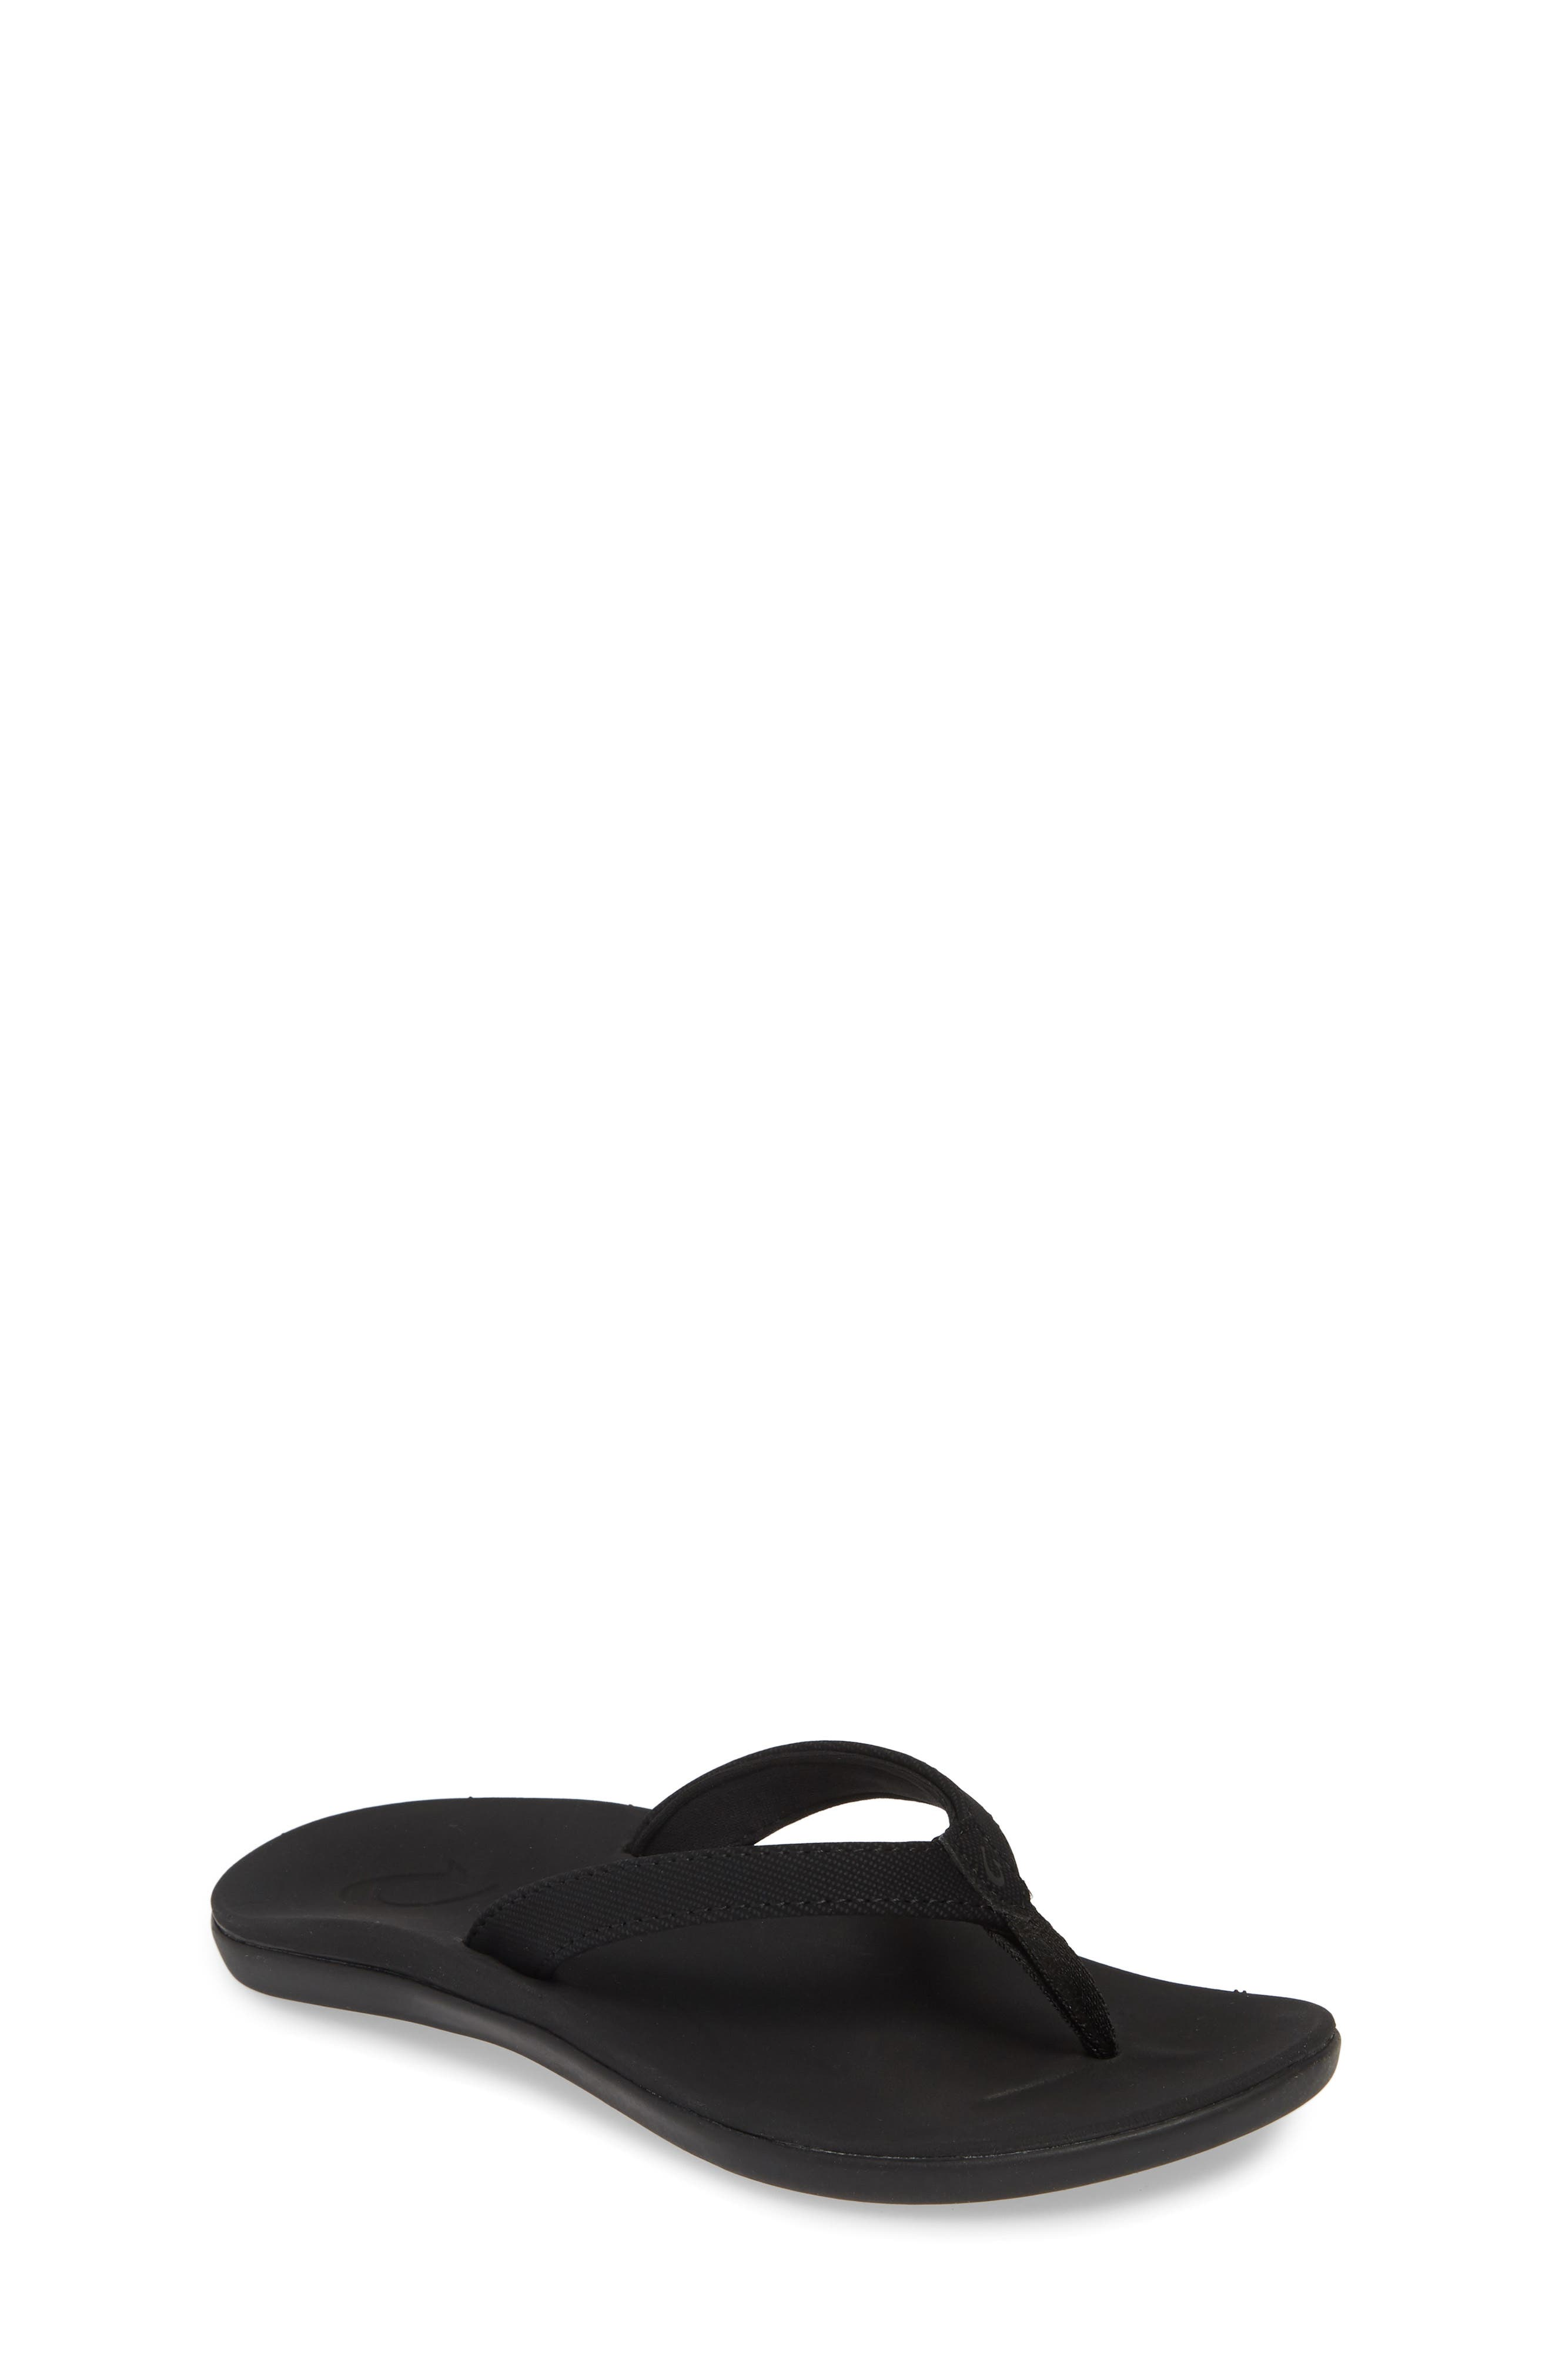 OLUKAI Ho'opio Flip Flop, Main, color, BLACK/ BLACK